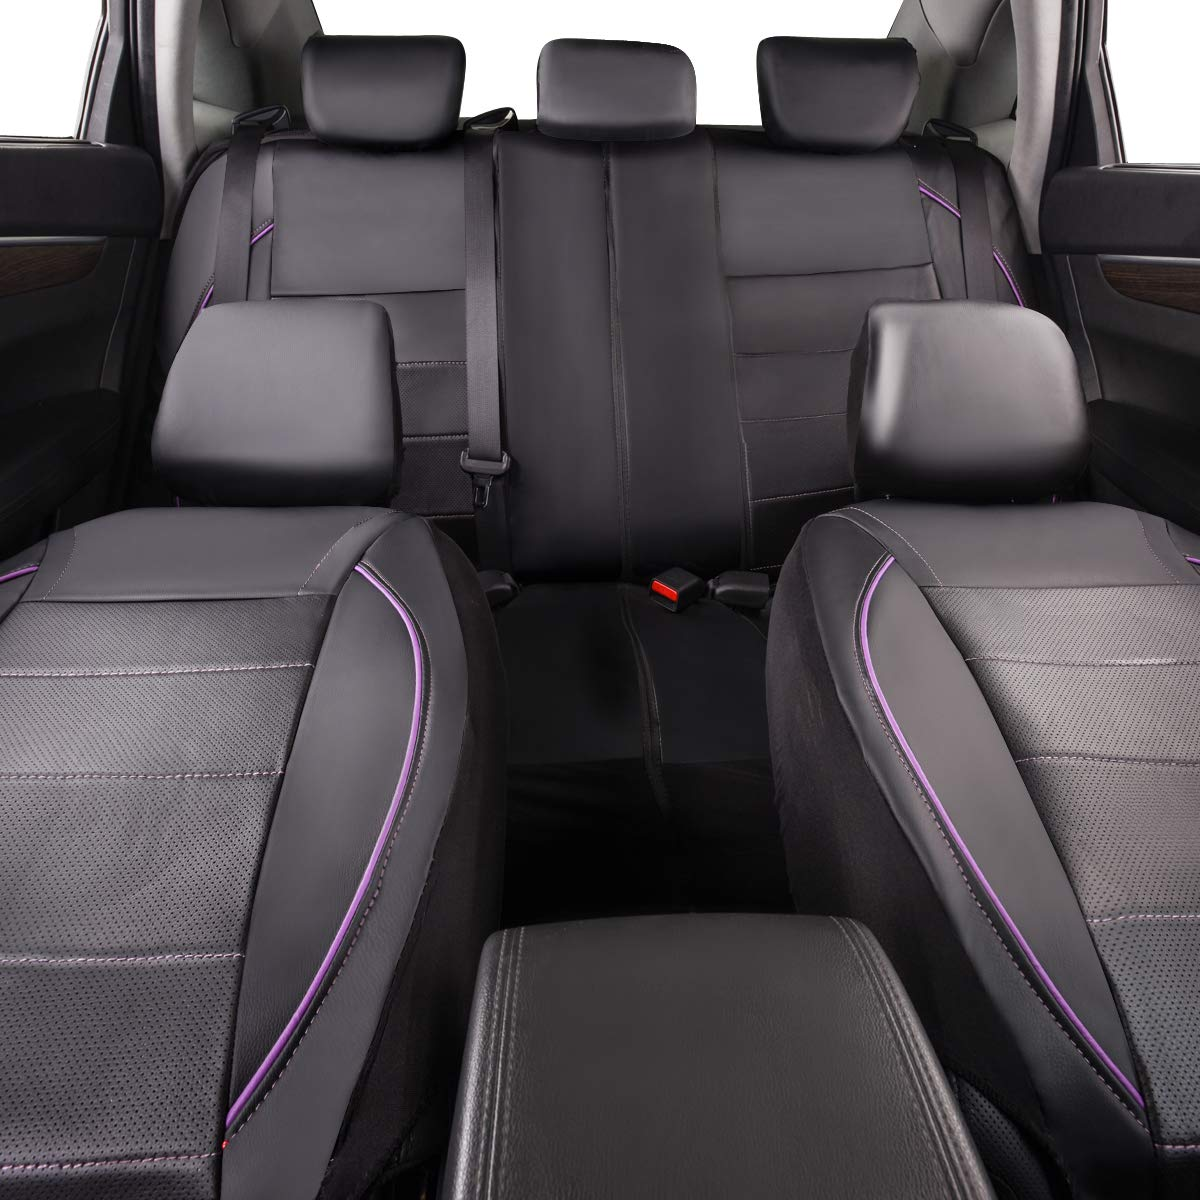 CAR PASS UNIVERSAL FIT PIPING Leather Car Seat Cover Full seat covers, black and purple color NEW ARRIVAL Perfect fit for suvs,Van,Trucks,Airbag compatible,Inside Zipper Design And Reserved Opening Holes